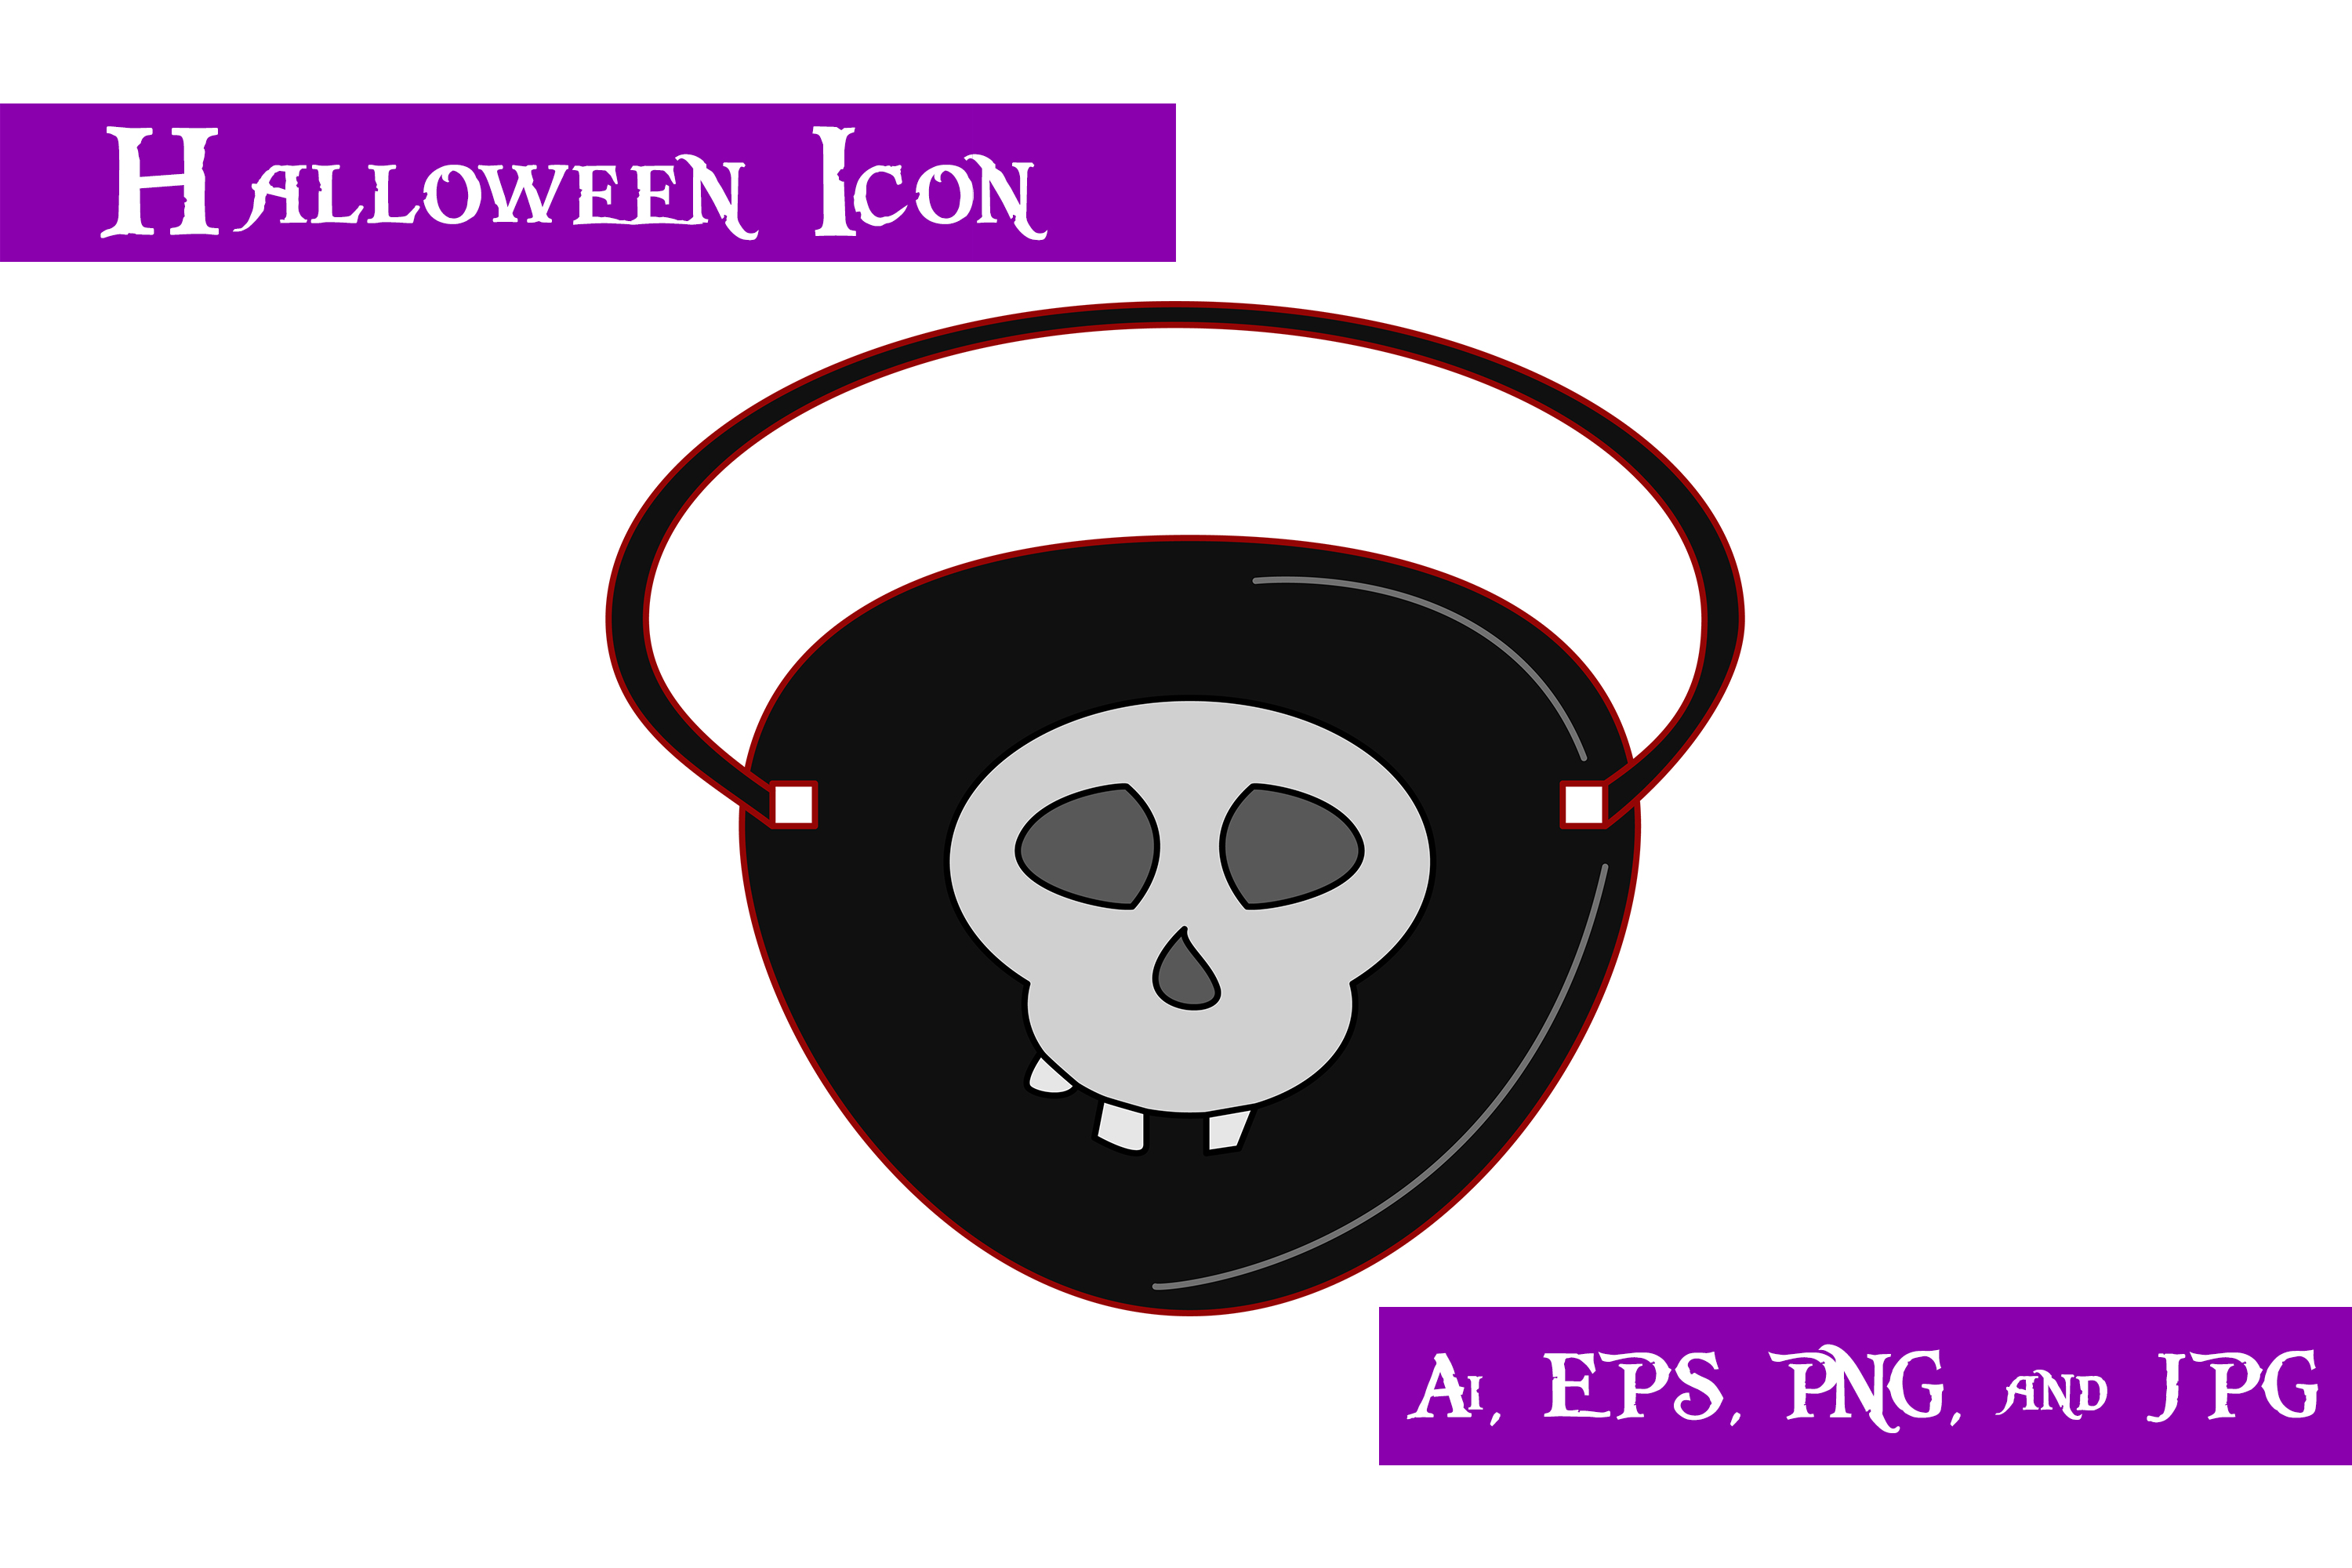 Download Free Pirate Eye Patch Halloween Icon Graphic By Purplespoonpirates for Cricut Explore, Silhouette and other cutting machines.